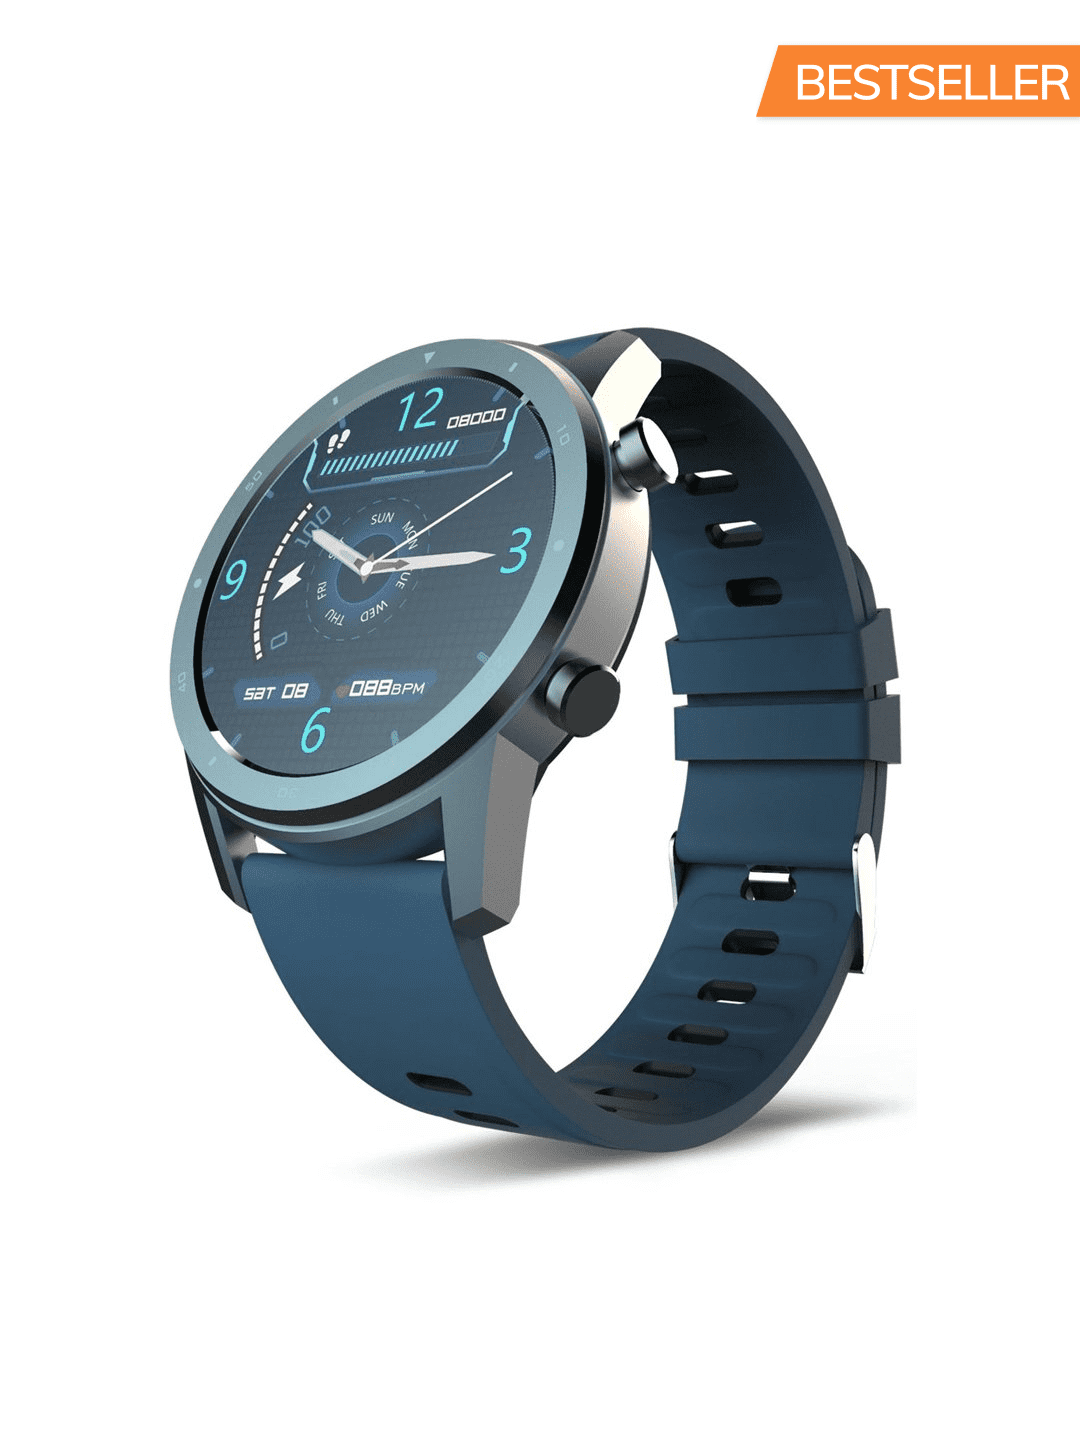 Molife Sense Smart LifeStyle Watch with 24 Sports Modes & Advance Health Tracking